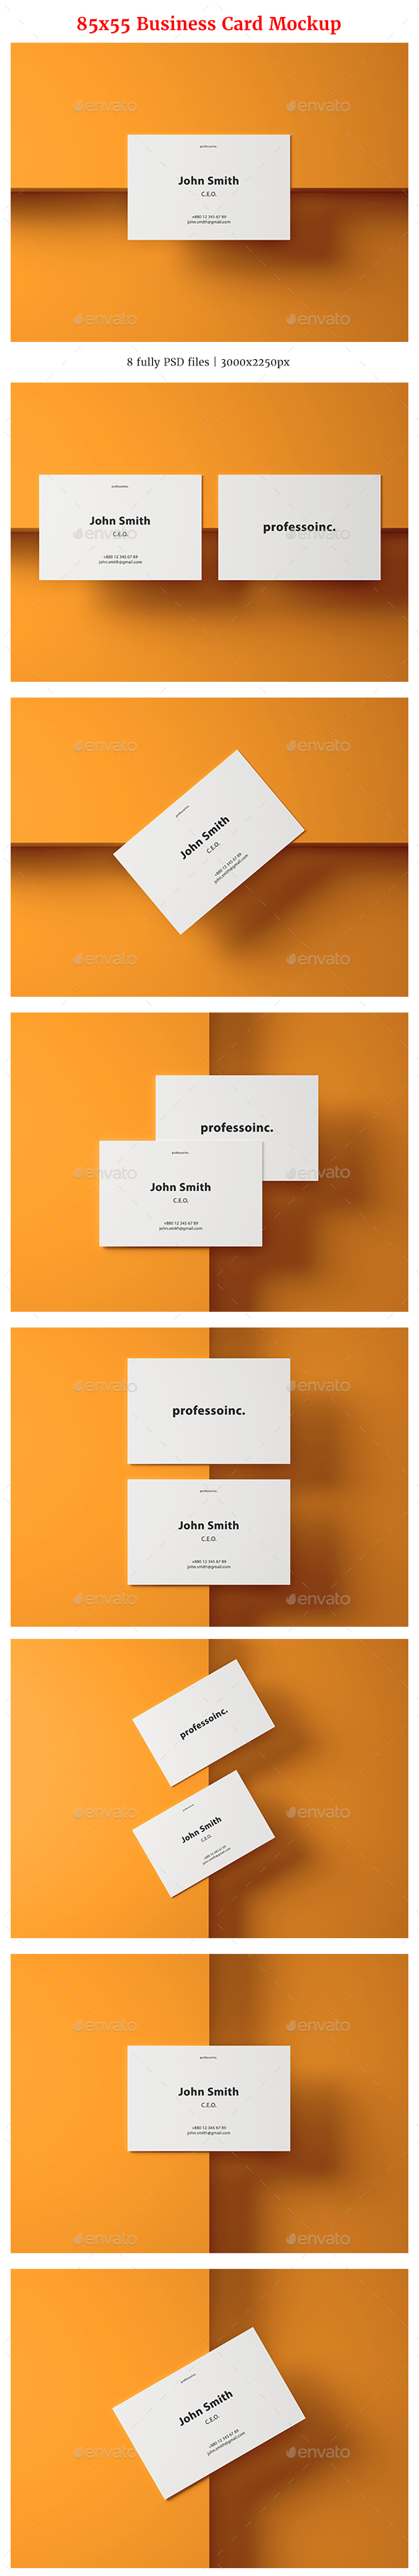 85x55 Business Card Mockup Set 2 - Business Cards Print